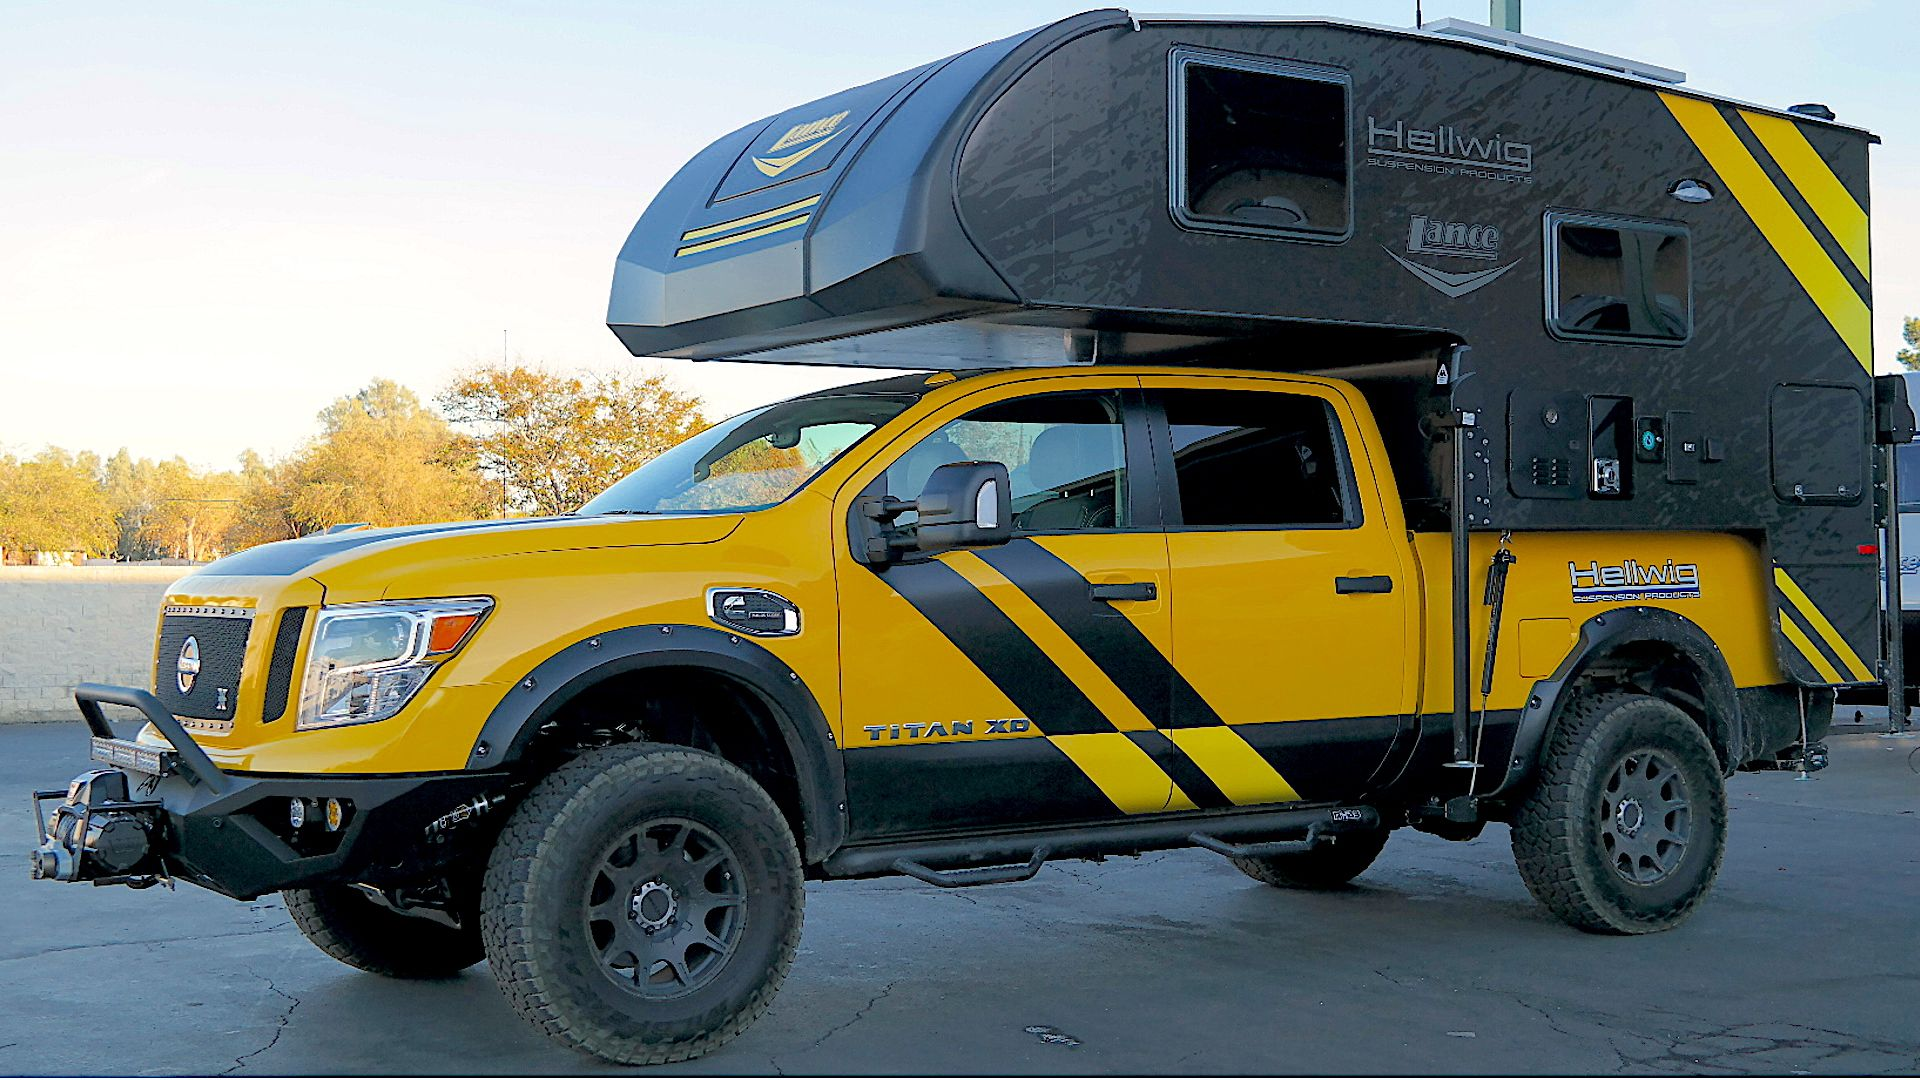 118000 Overland Truck Camper Lance Hellwig Concept Vehicle Lengthening Car Trailer Page 2 Pirate4x4com 4x4 And Offroad